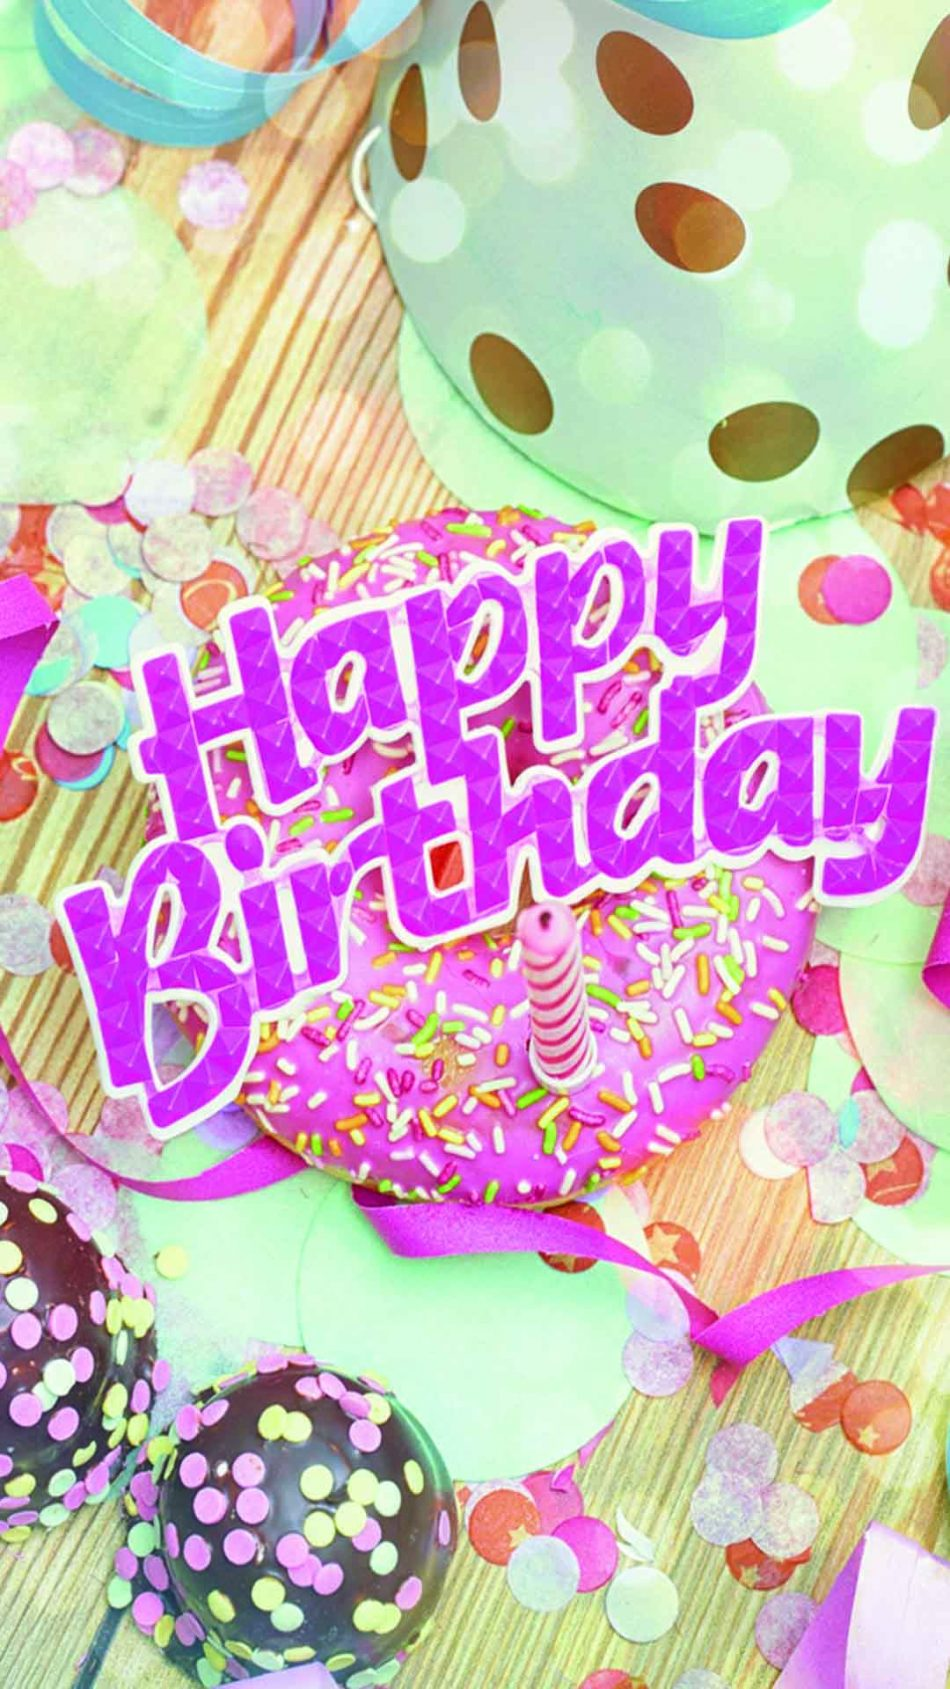 Download Happy Birthday Free Pure 4k Ultra Hd Mobile Wallpaper